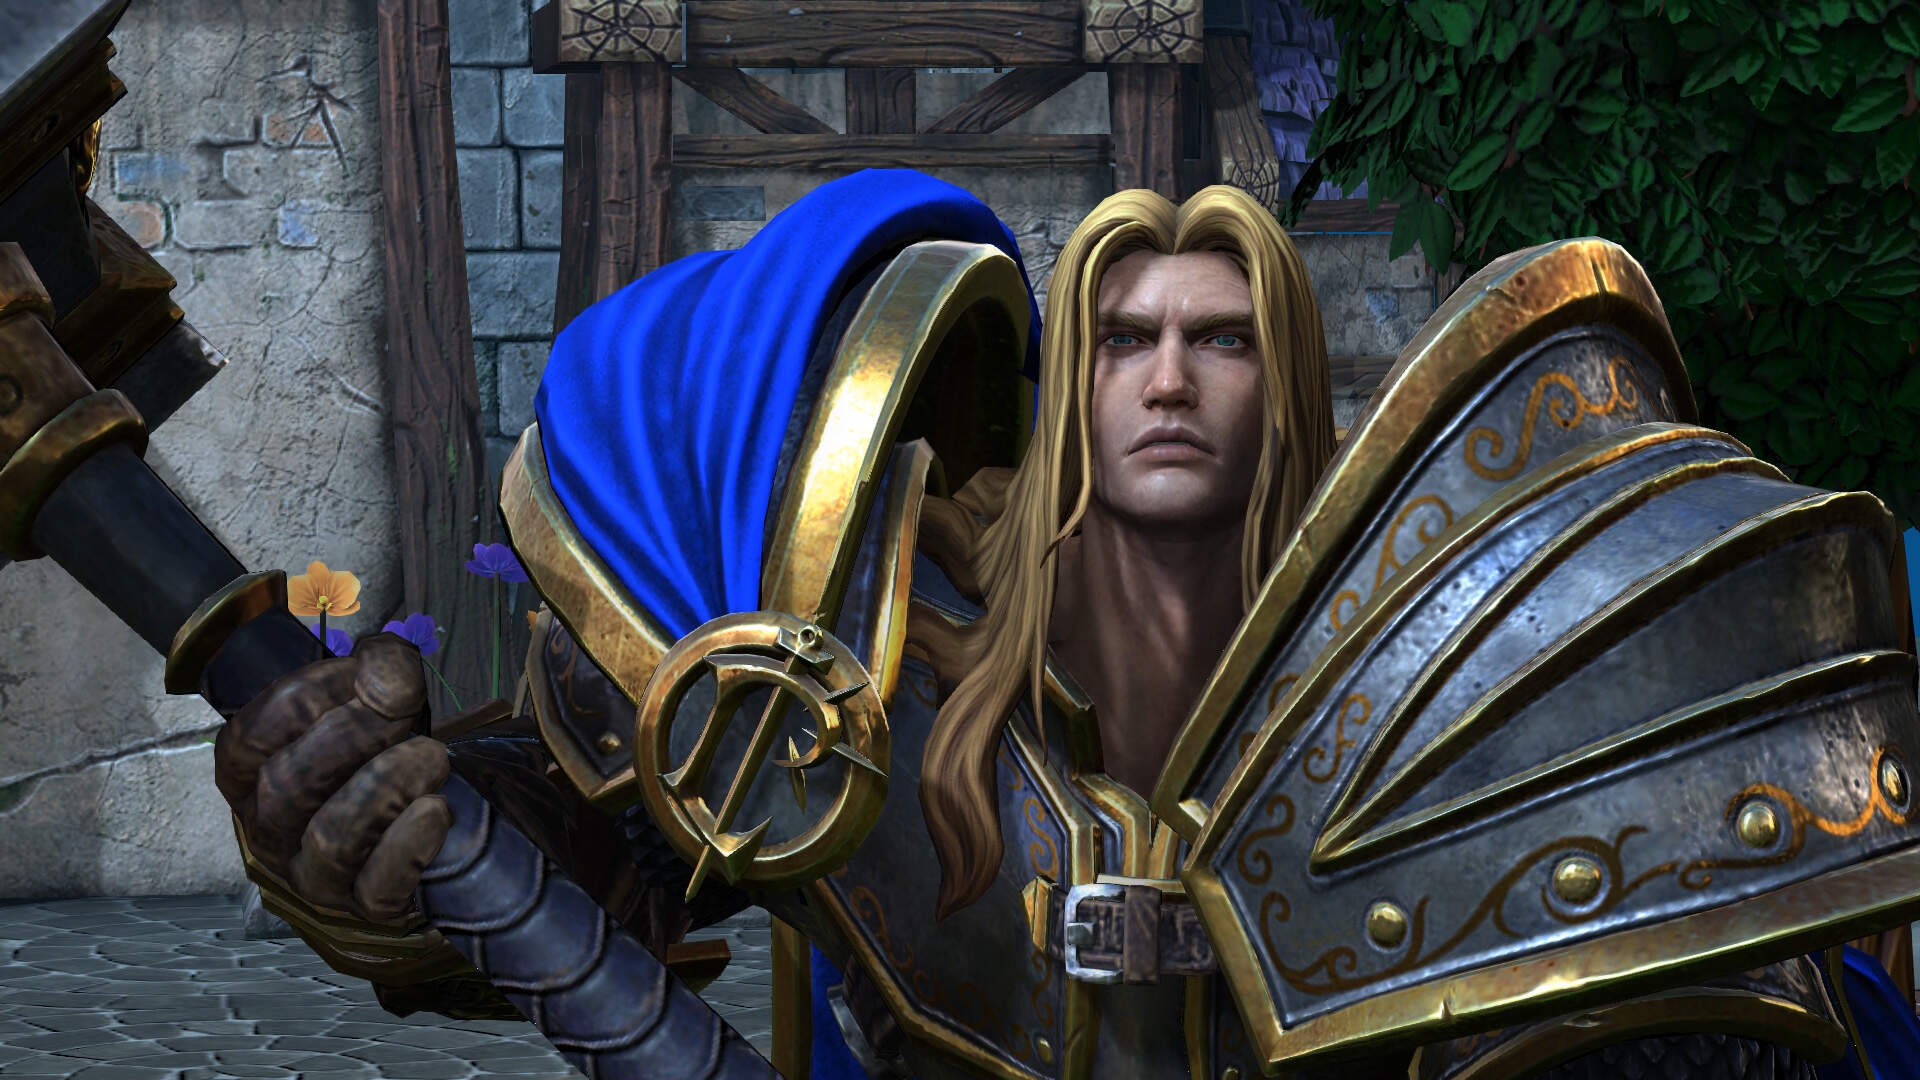 Warcraft 3: Reforged Finally Surfaces With Playable Multiplayer Beta This Week